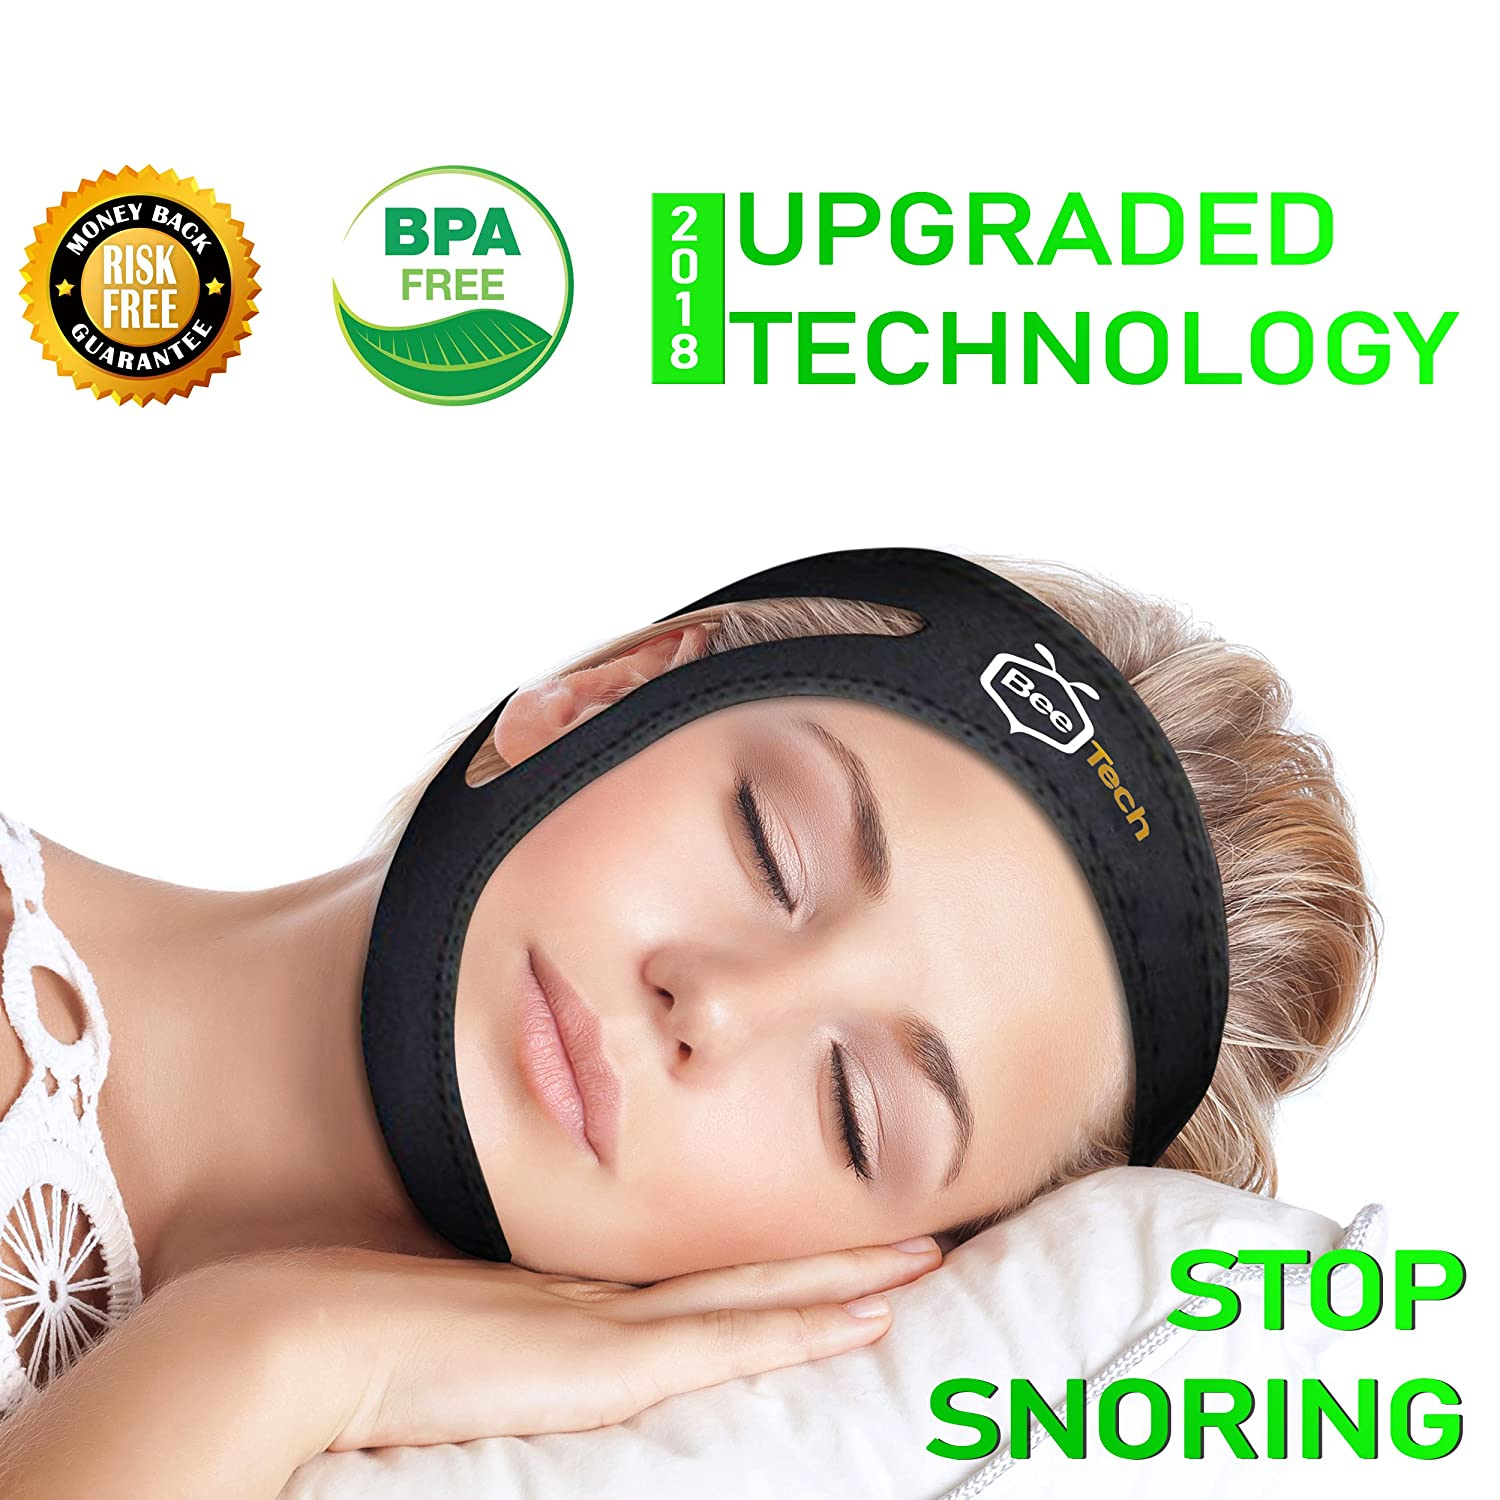 Anti Snoring Chin Strap new Anti Snoring Devices by BeeTech